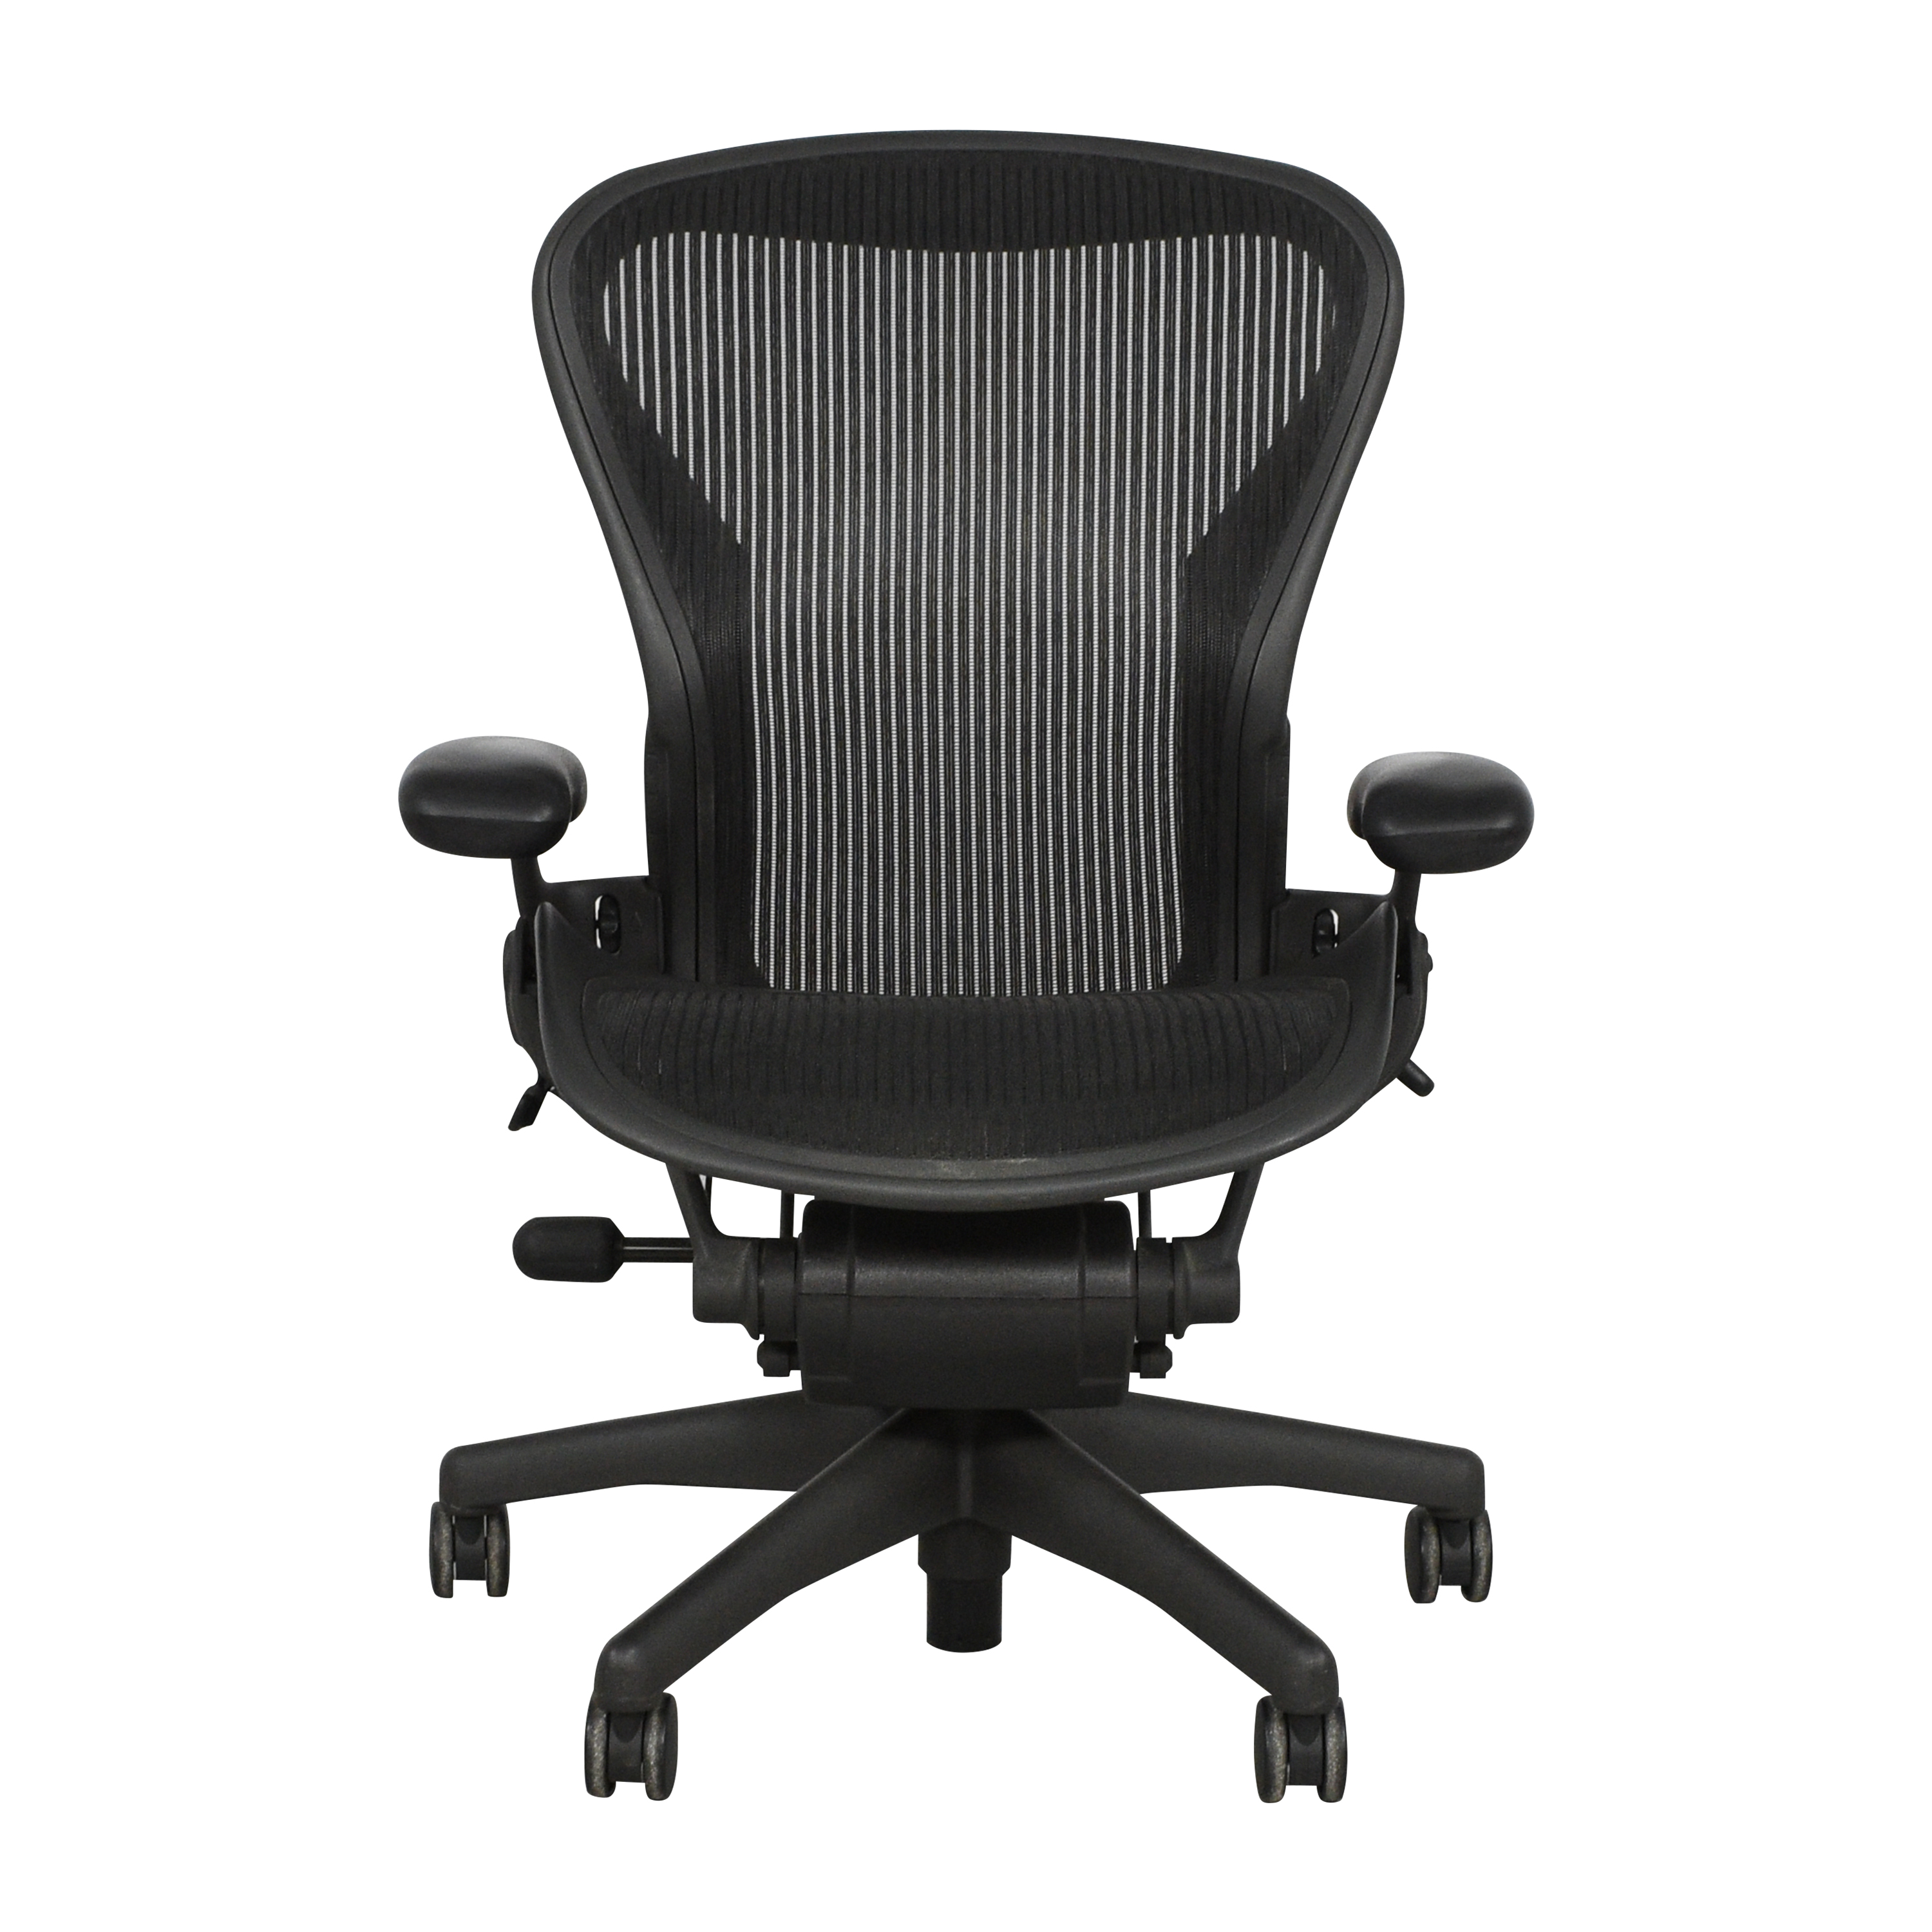 Herman Miller Aeron Size B Office Chair / Home Office Chairs